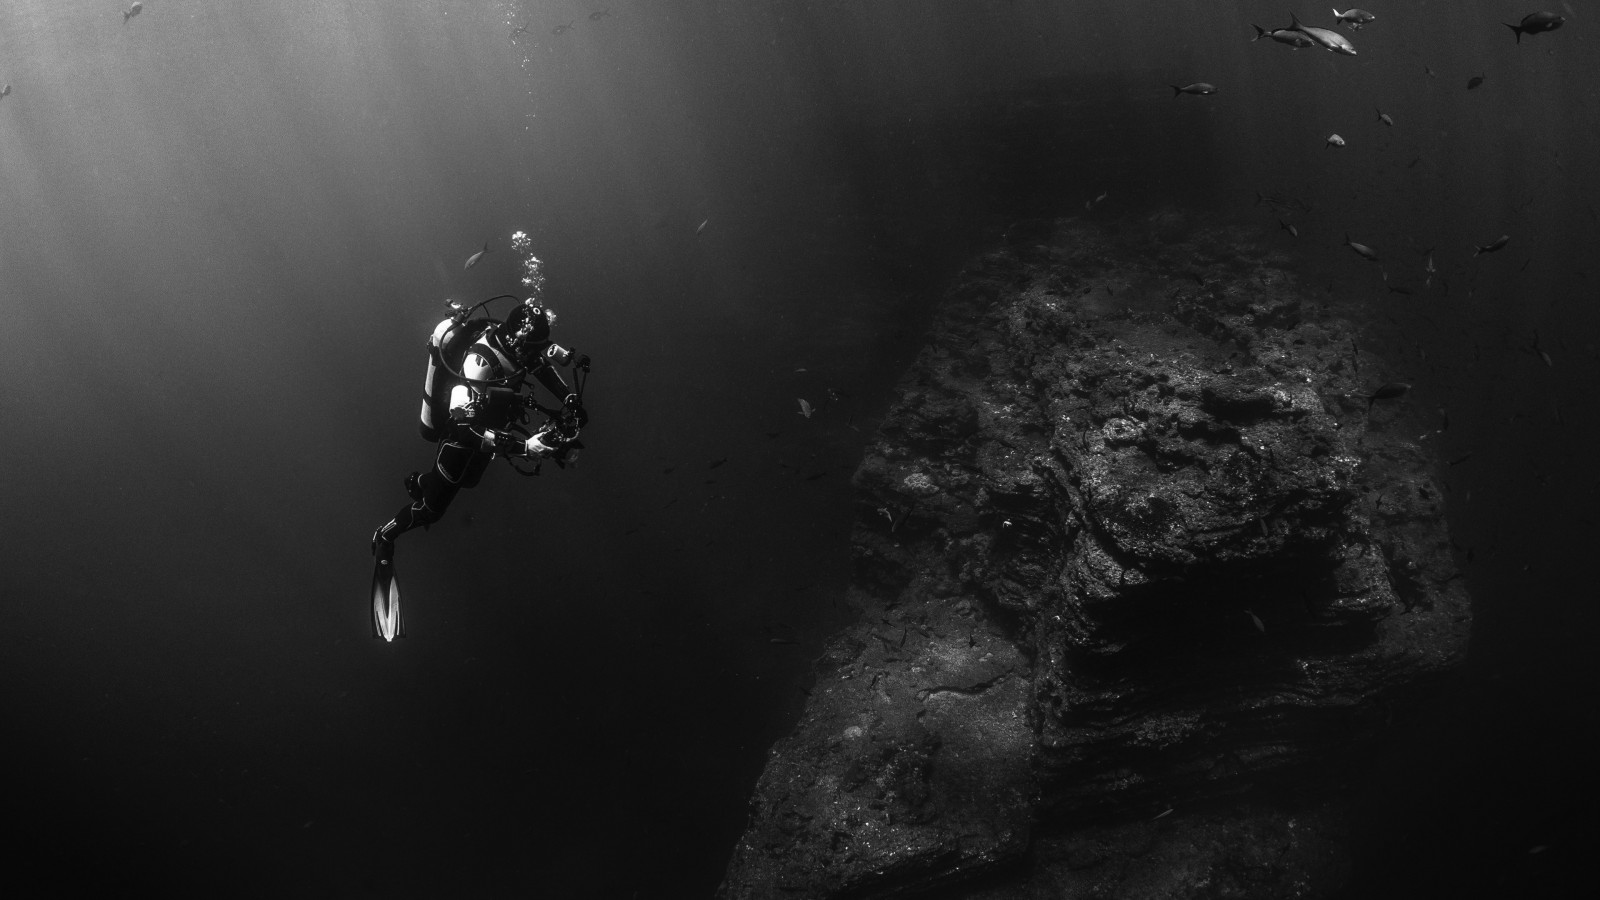 Diver in the Pacific Ocean wallpaper 1600x900